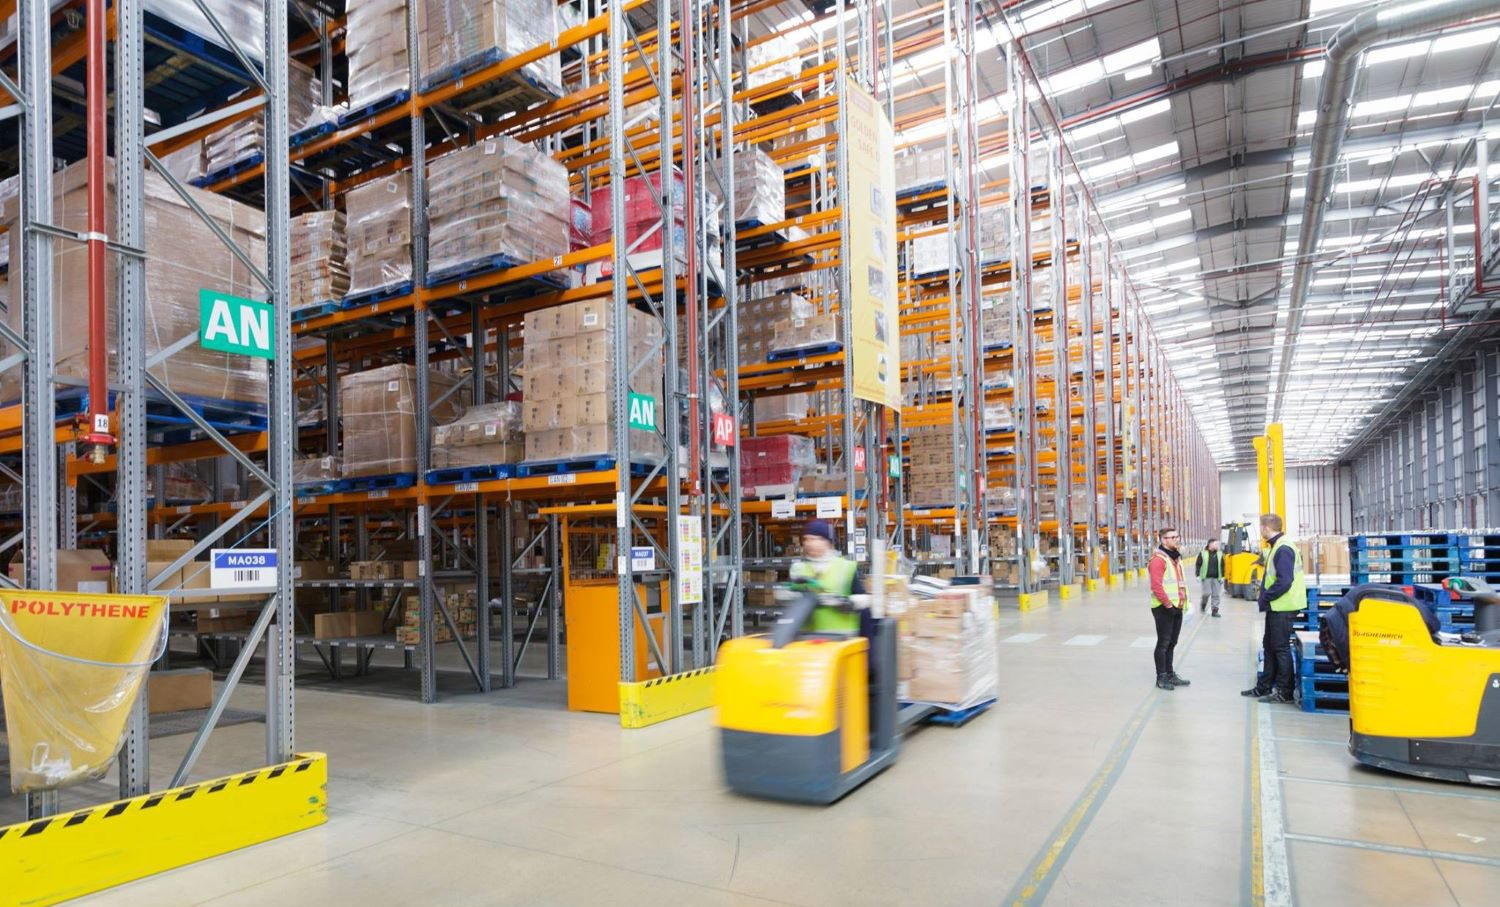 Frontline workers in warehouse use app to manage inventory